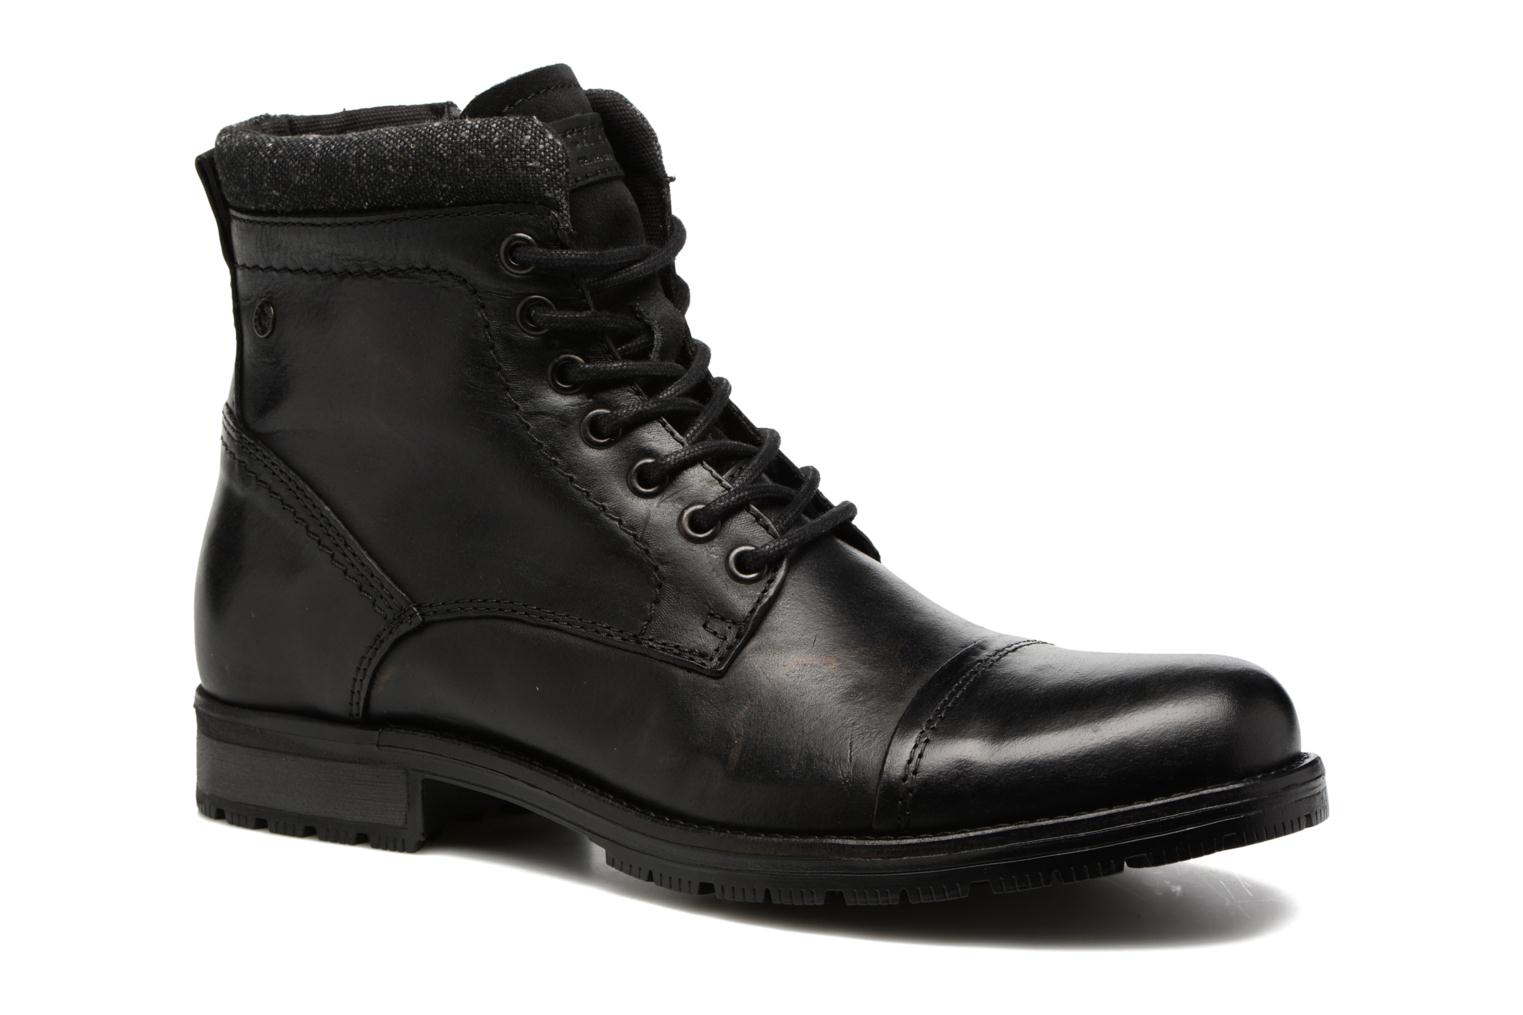 JFWMARLY LEATHER Black